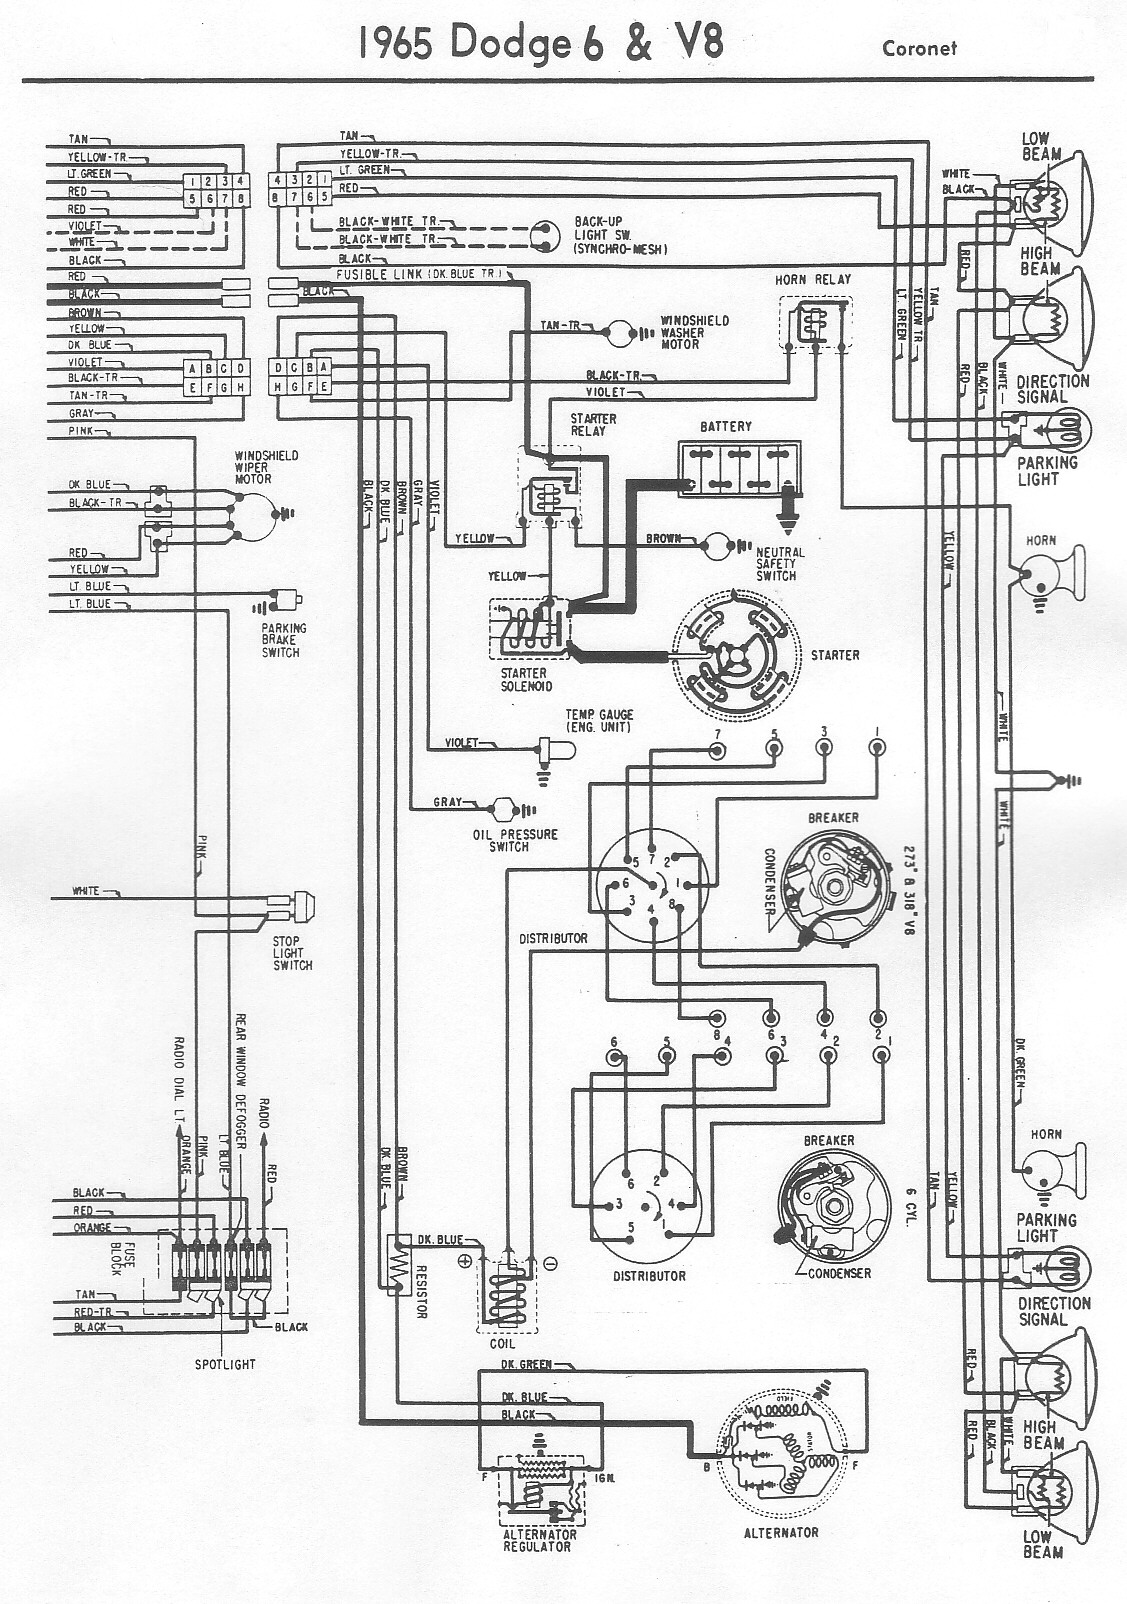 1966 Chrysler Ignition Wiring Diagram Trusted For 50 Hp Force 300 Library 125 Outboard